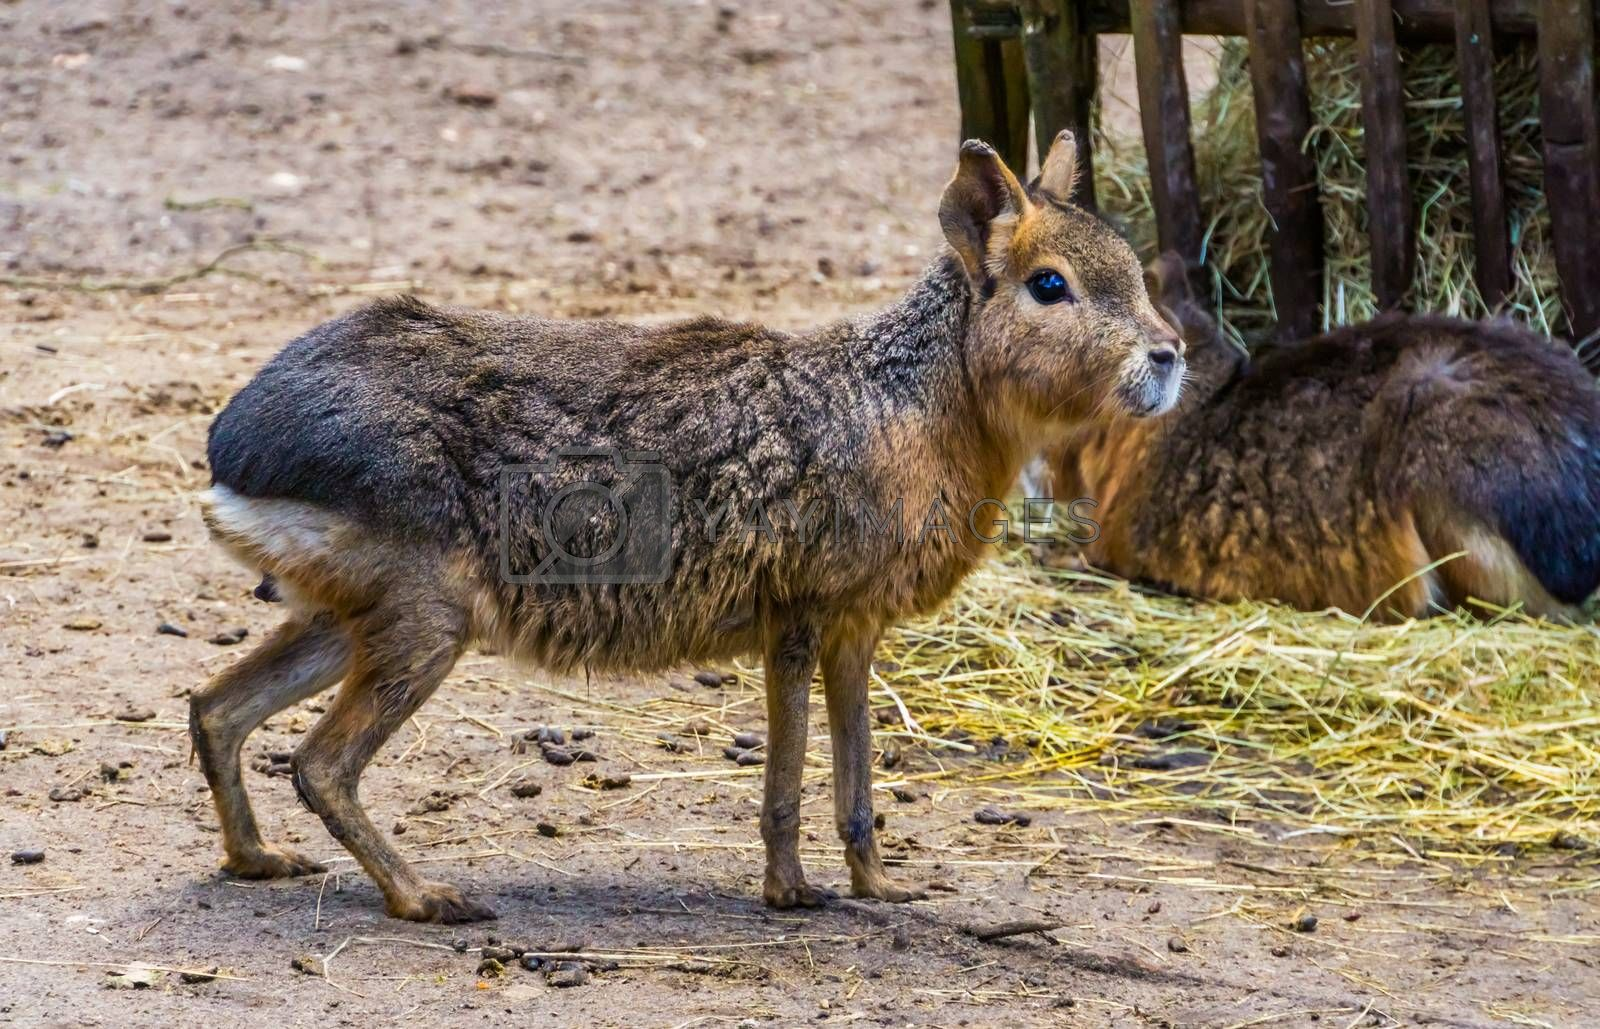 closeup of a patagonian mara standing in the sand, Near threatened rodent specie from Patagonia